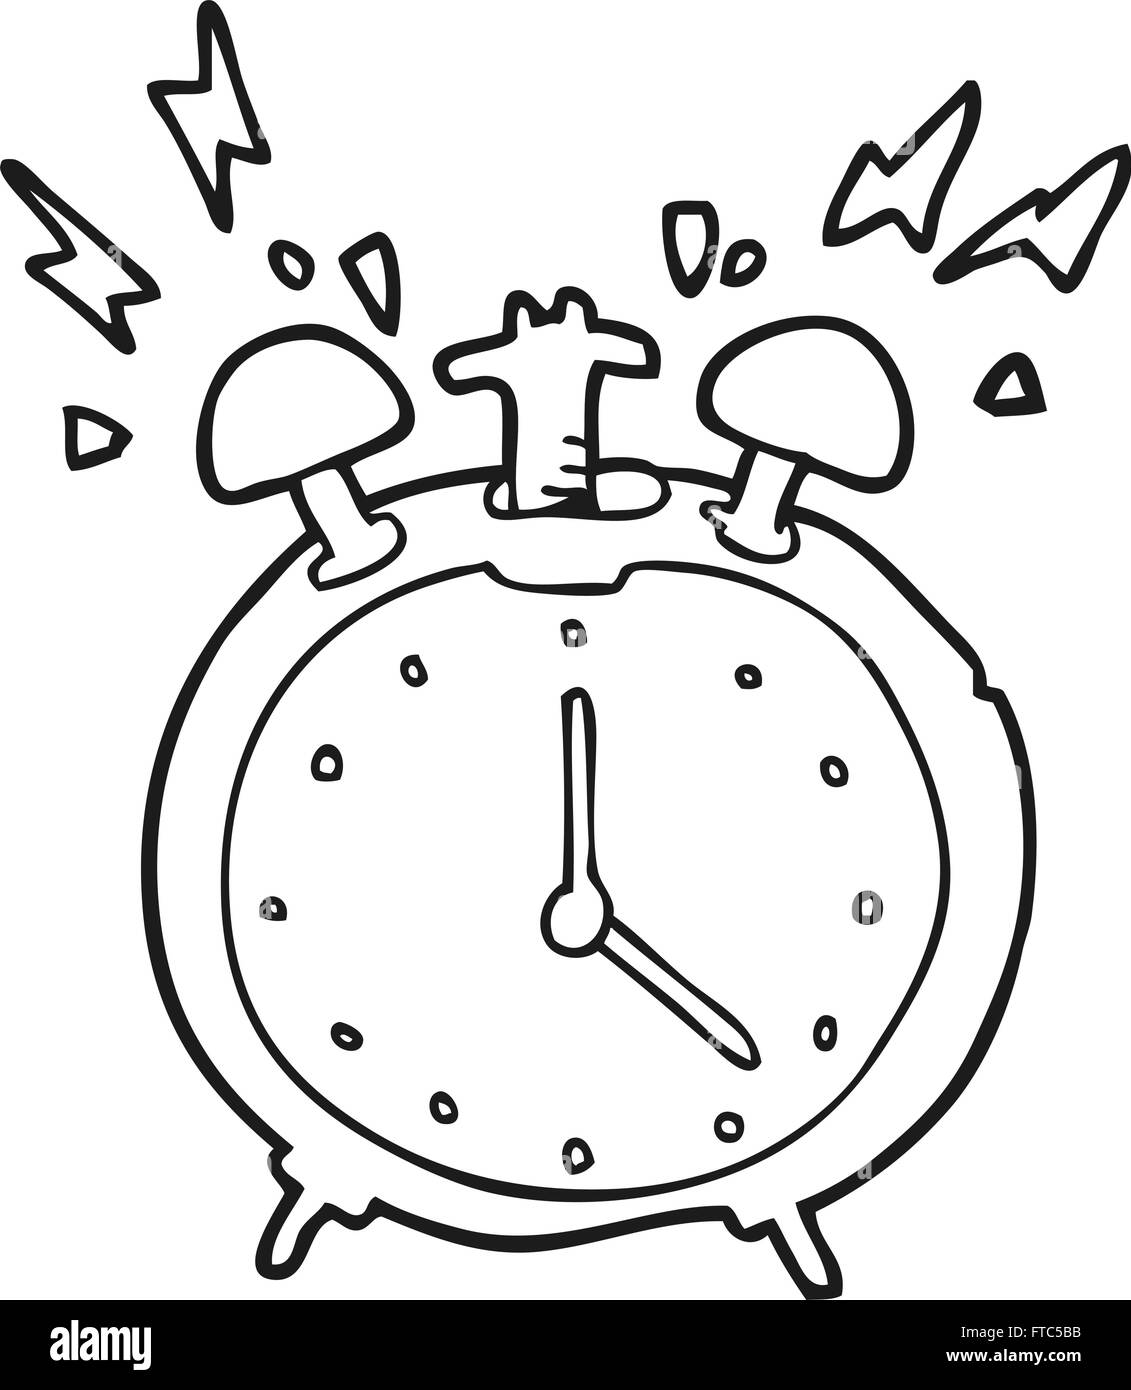 freehand drawn black and white cartoon ringing alarm clock stock Clock Hands freehand drawn black and white cartoon ringing alarm clock